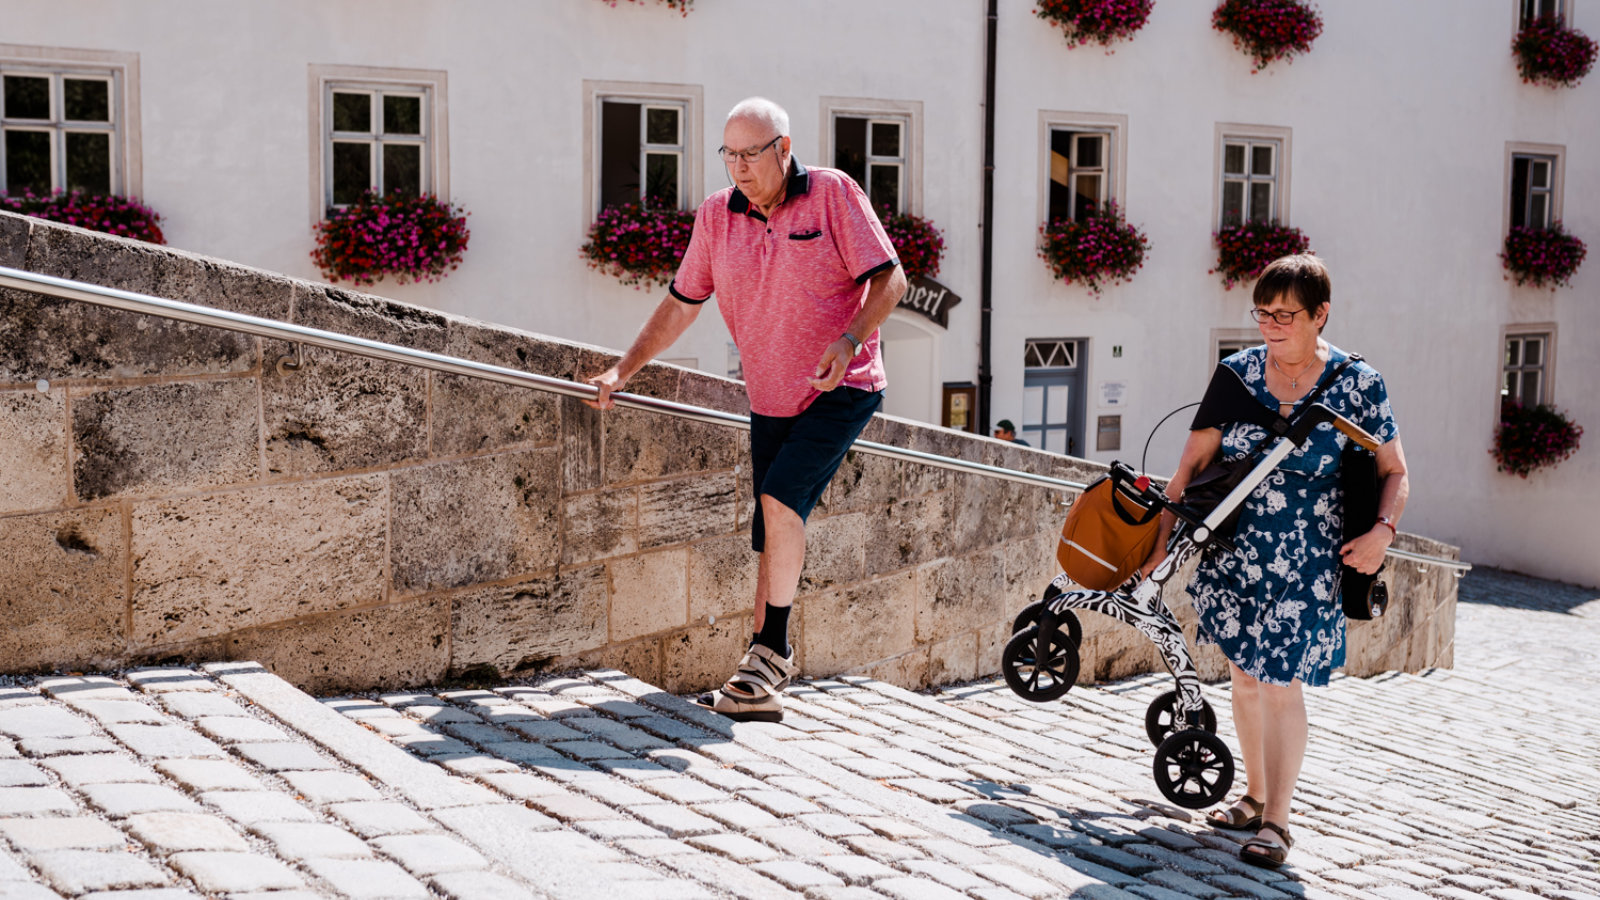 Carbon Rollator Test - carry the rollator